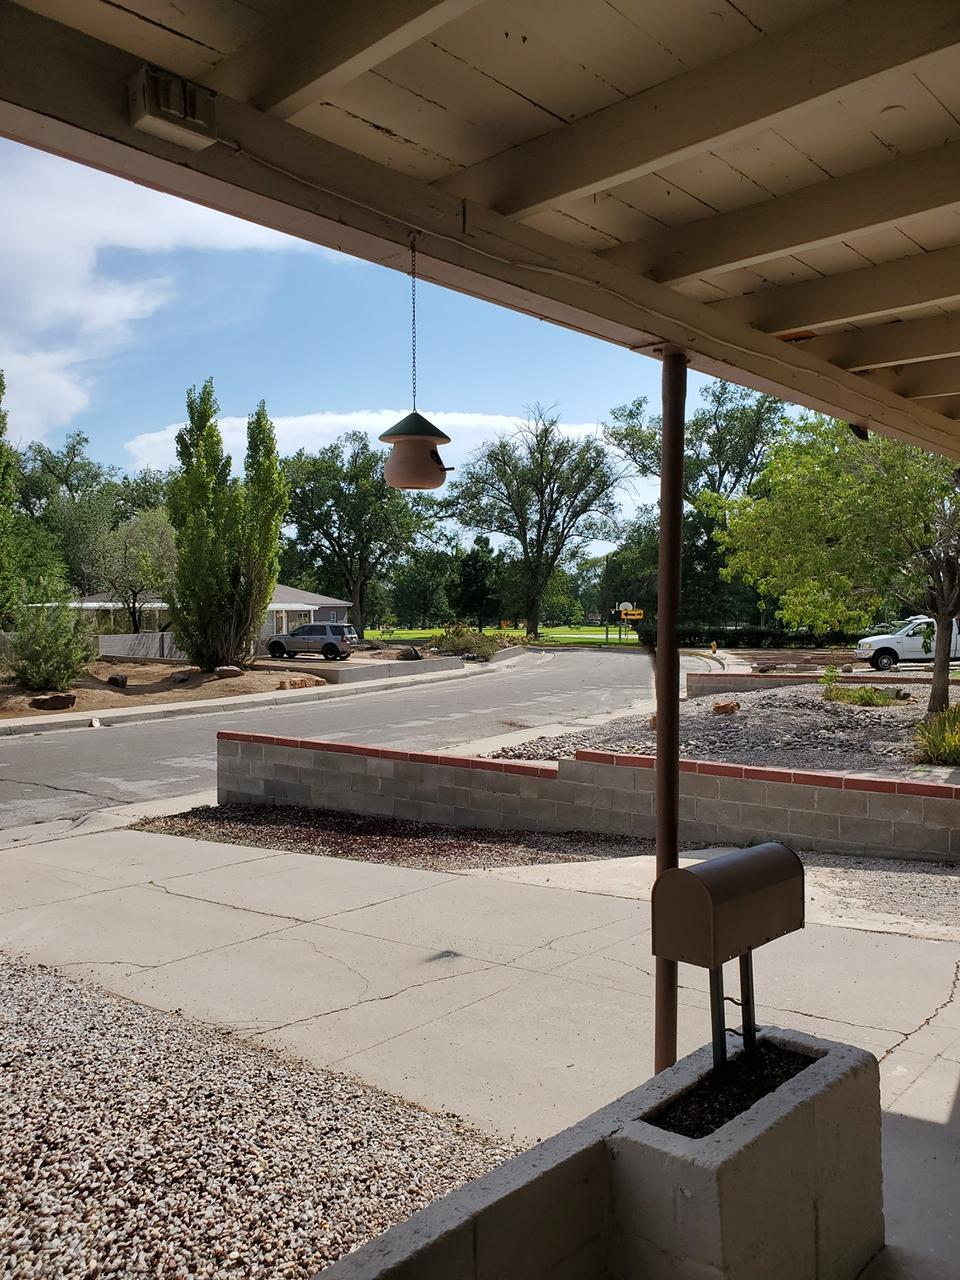 Classic starter home with good bones!  Refrigerated Air, Newer Water Heater/2020, Electrical Updated/2018 Electrical (200amp), Roof Replaced/2016, Fireplace Refurbished/2016, Sewer line replaced 2012.  Seller is offering $3000. flooring allowance with acceptable offer.  Mid Century vibe, steps from Hoffman park.   4 bedrooms/one of which has a separate outside entrance ideal for a home office.   2 separate living areas- 2nd is a large family room with a wood burning fireplace.  Perfect for those cold winter days and nights and large enough for the whole family to enjoy.  Laundry/utility room hosts built in shelving.  A large shaded backyard, featuring a covered patio with a built in storage/garden shed.  A long drive way allowing multiple cars space to park.